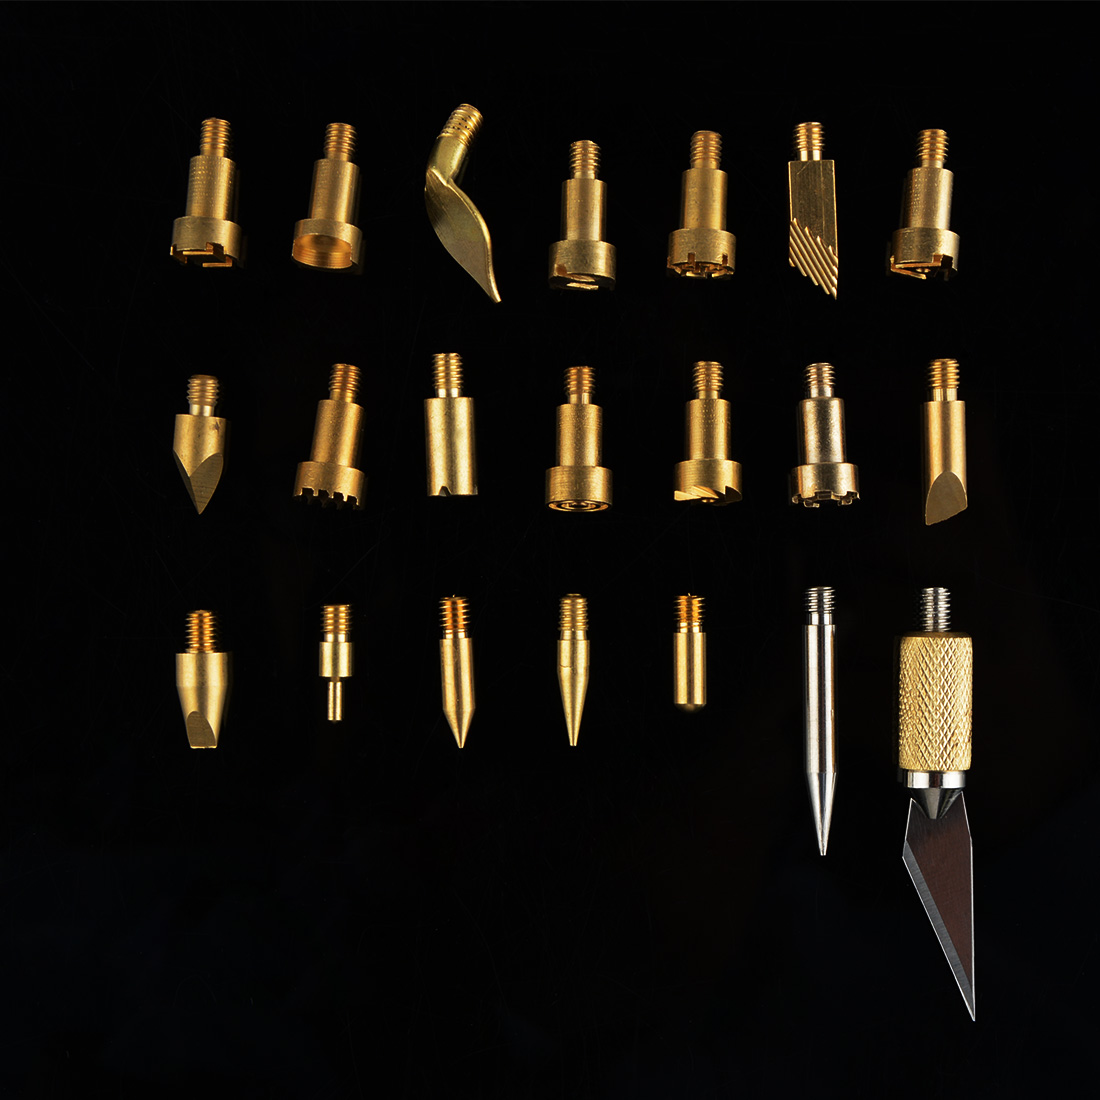 22pcs/lot Carved Iron Head Wood Burning Pen Tips Stencil Soldering Iron Tip For Pyrography Woodworking Carving Tool  Supplies